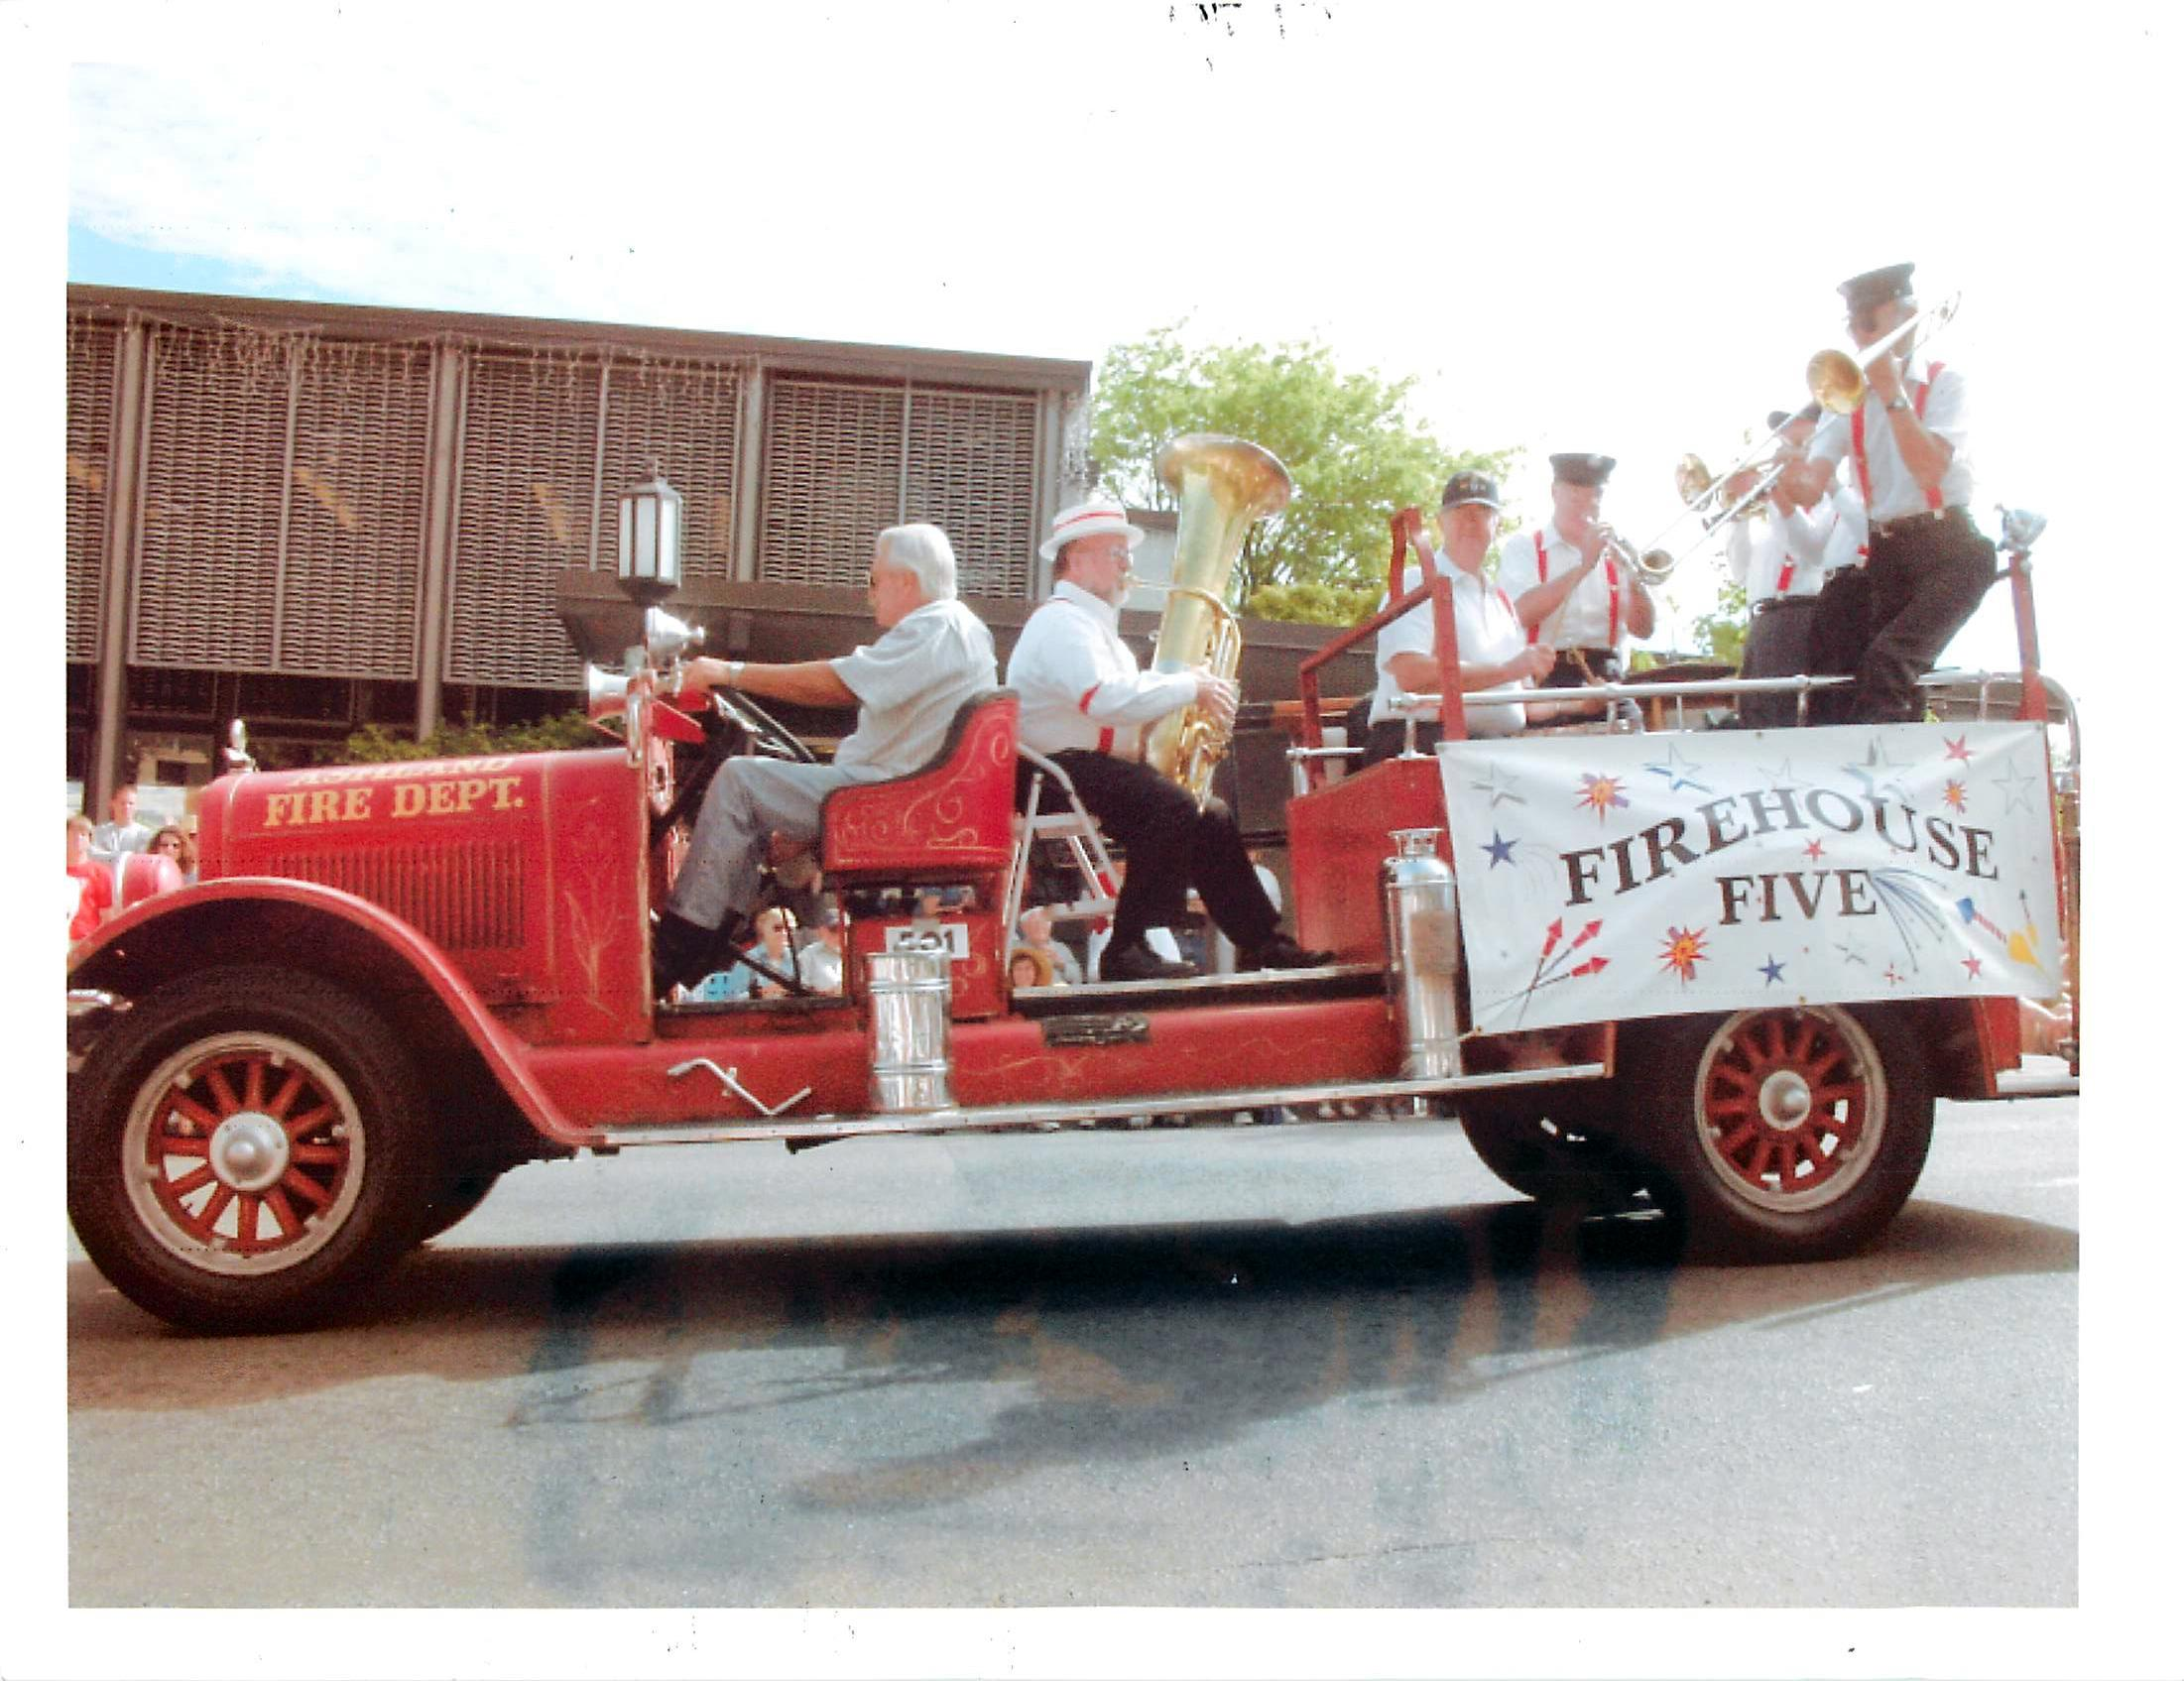 The Firehouse 5 band in the 1926 Reo in the 1989 Ashland 4th of July ParadeJack Tate drives, Mike Knox on tuba, Lyle Ames on drums, Dick Cottle on trumpet and Randy Gugdahl on trombone. Two persons unidentified on the back rail by the hoses. (Photo courtesy of Barbara Knox)